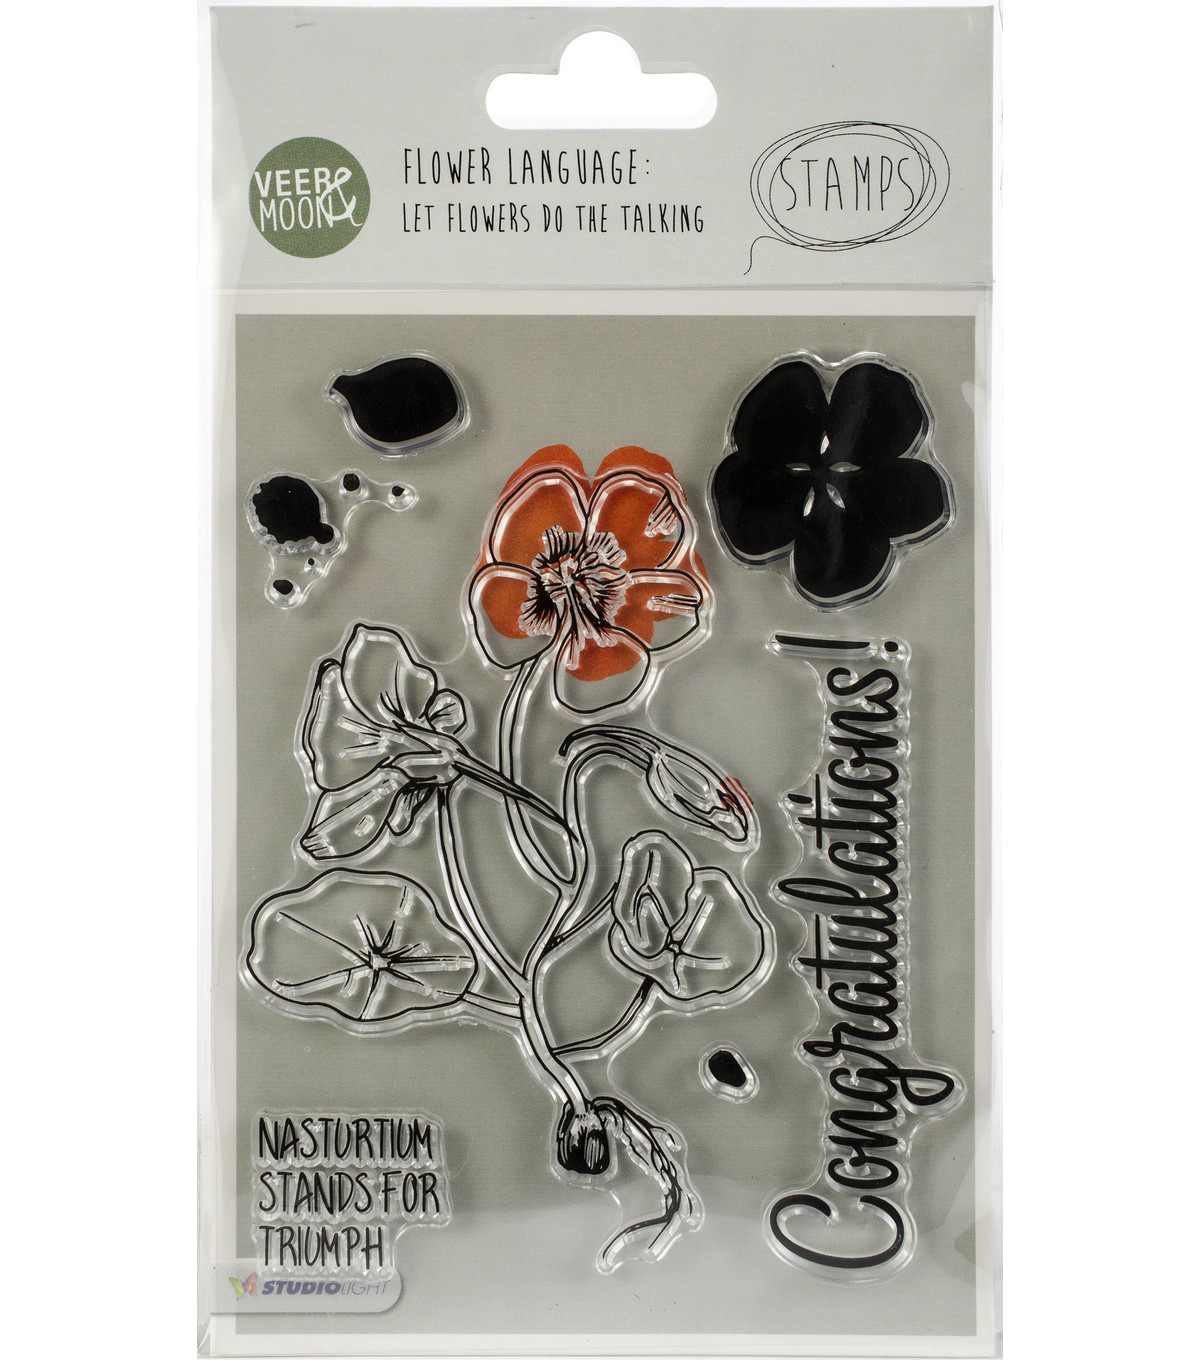 Studio Light Veer & Moon 7 pk Stamps-Nasturtium Stand for Triumph